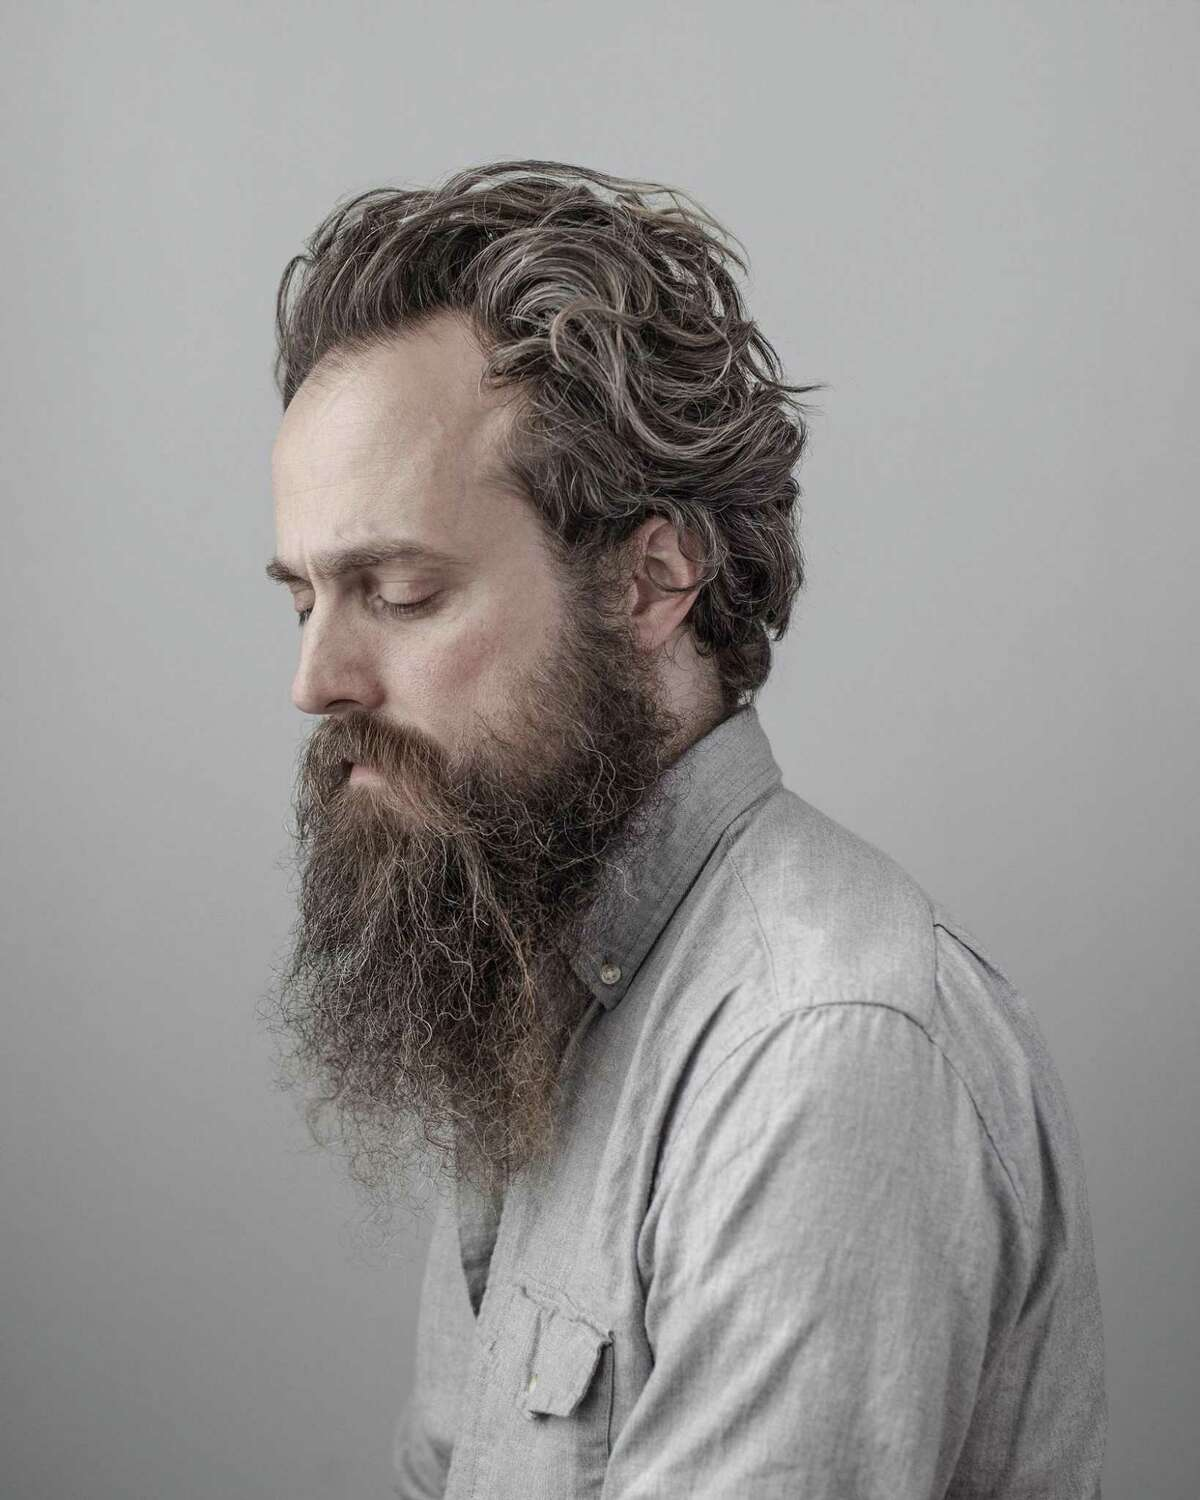 Iron & Wine performs at College Street Music Hall in New Haven on Friday, Nov. 10.